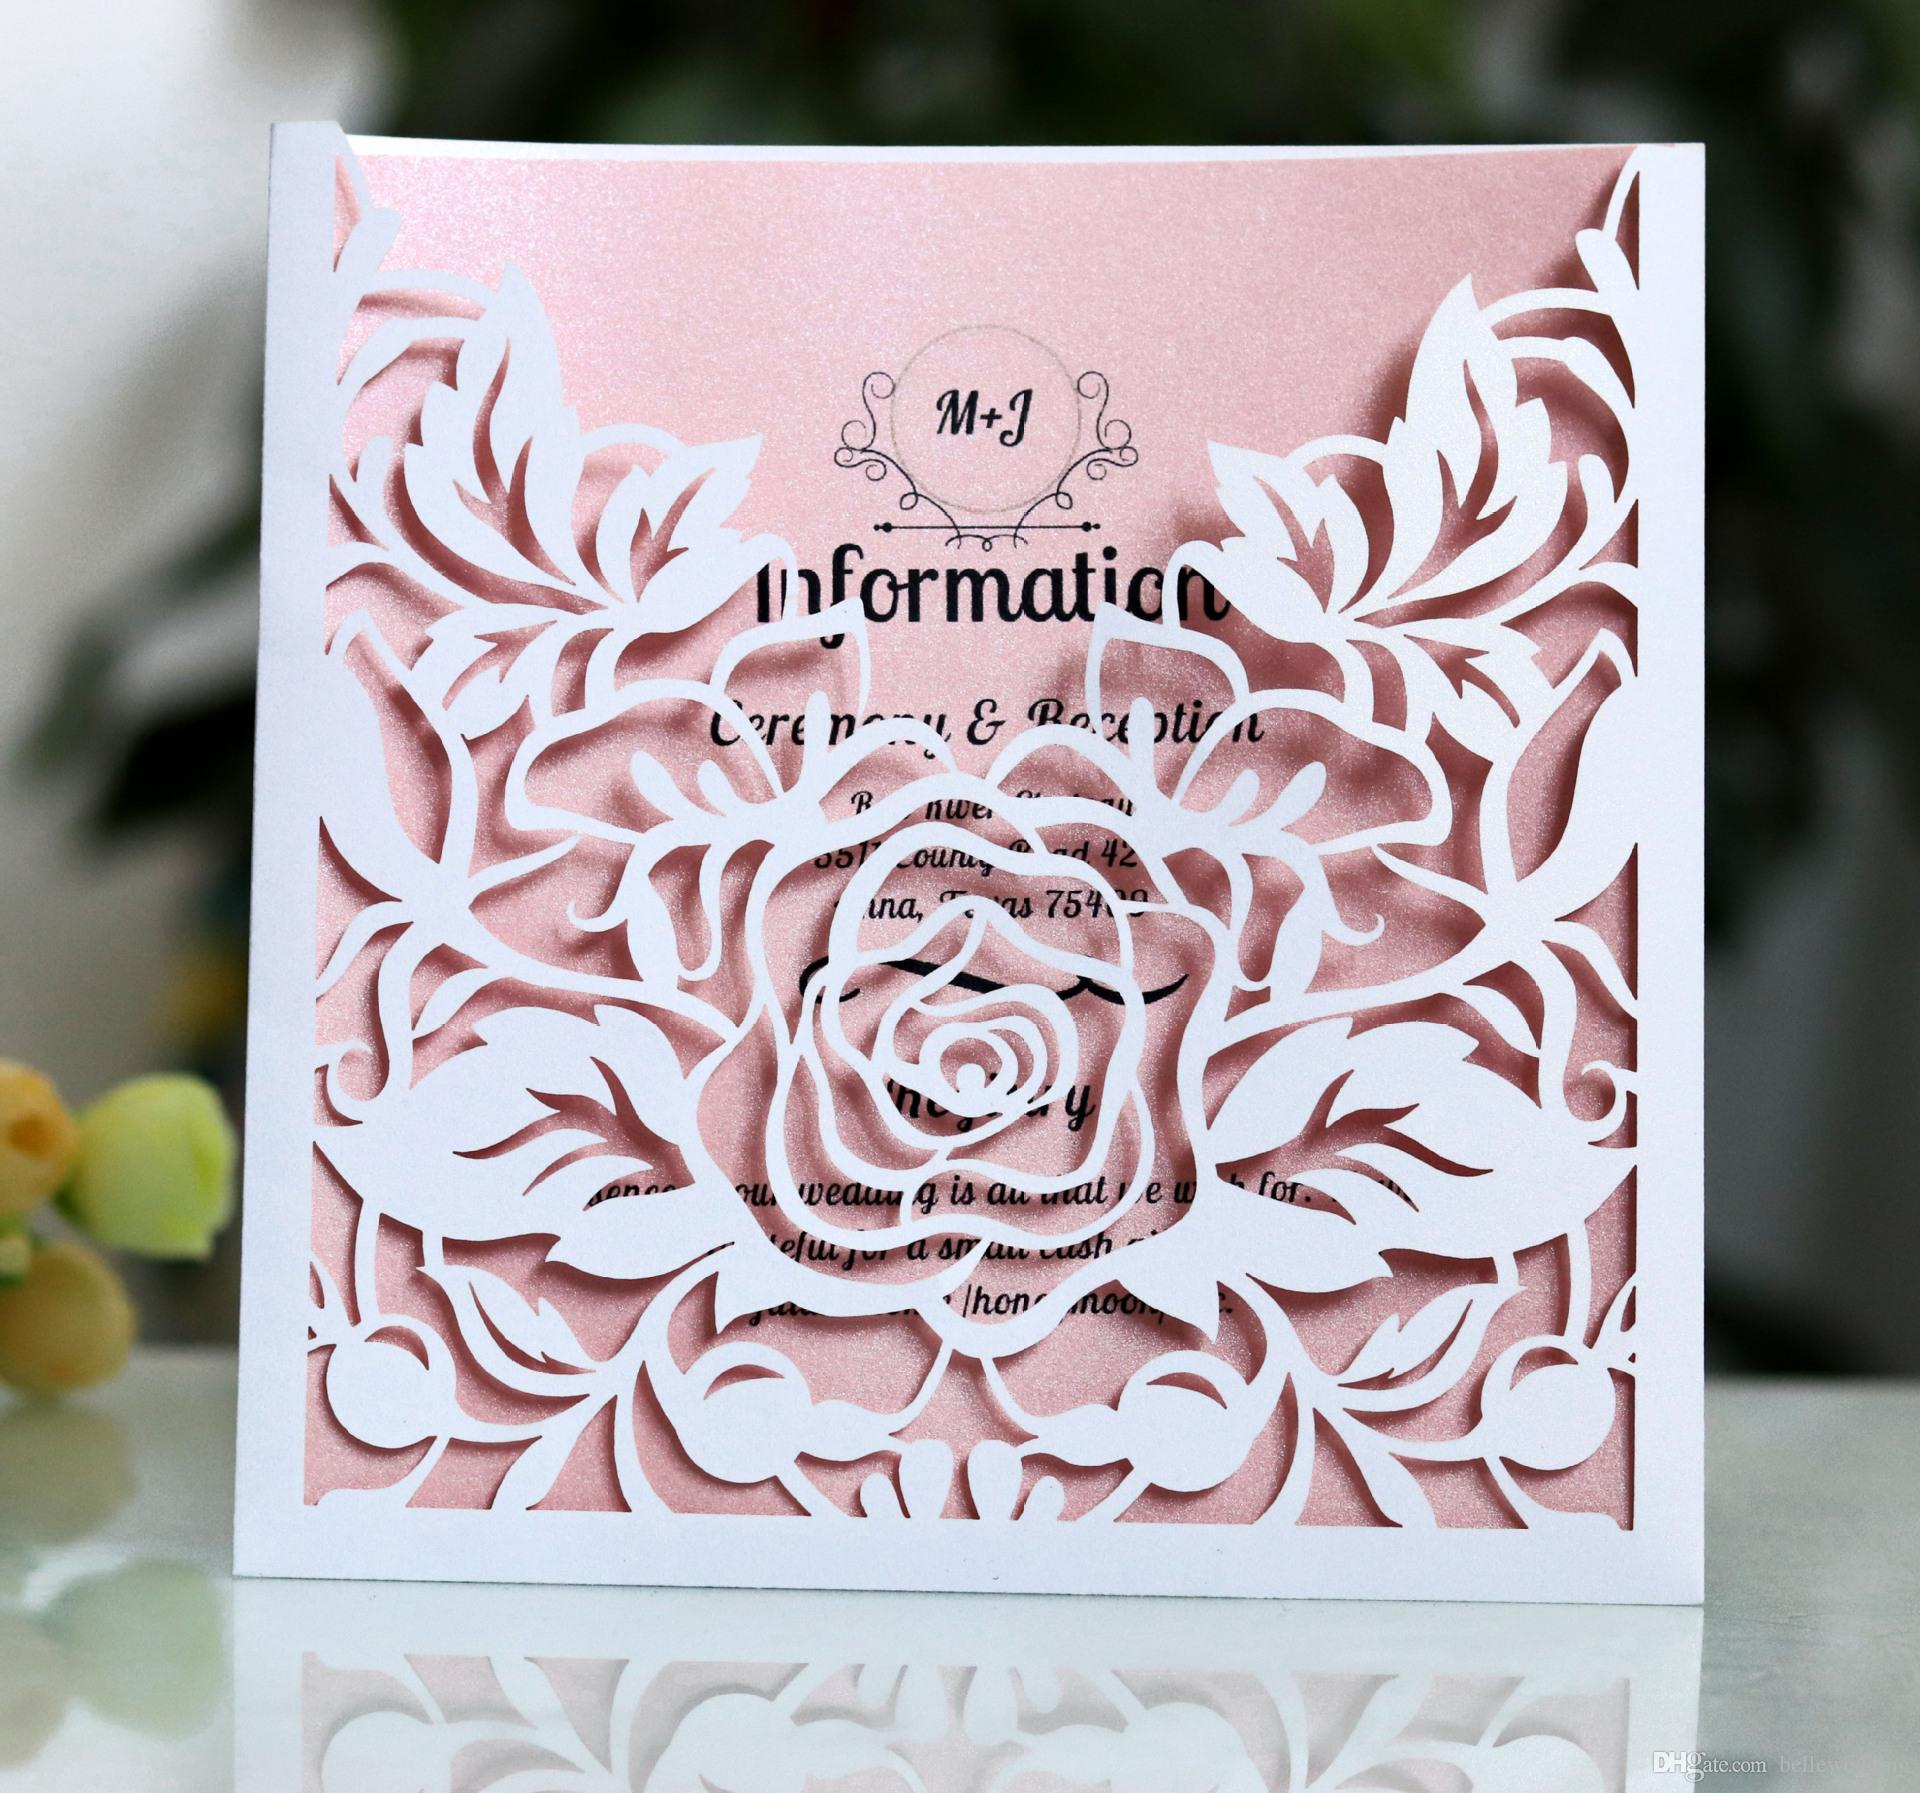 Personalized Wedding Invitations.Laser Cut Wedding Invitations Oem In Multi Colors Customized Hollow With Roses Folded Personalized Wedding Invitation Cards Bw Hk130